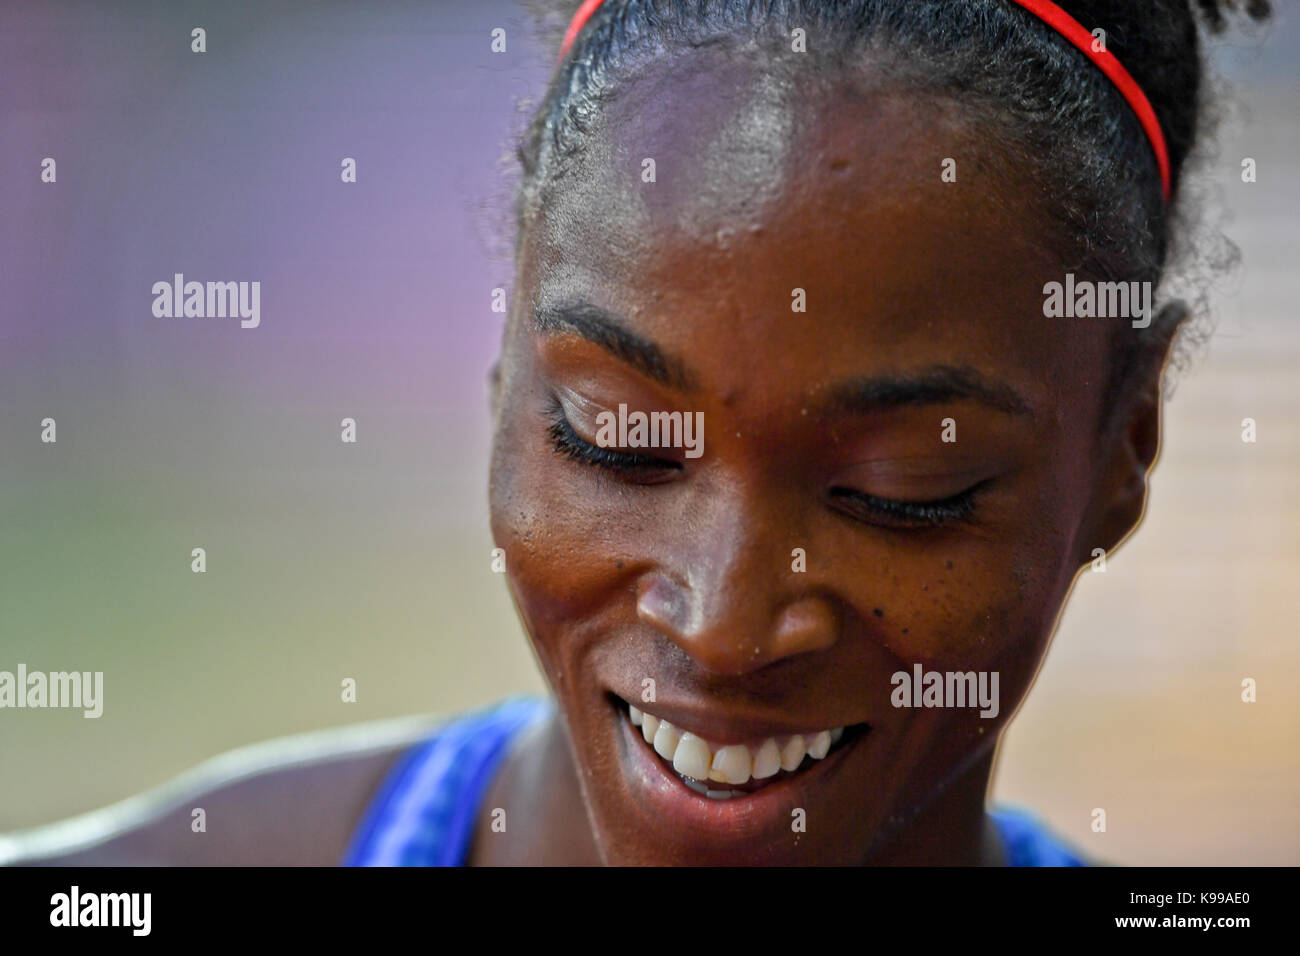 Tianna Bartoletta (USA) -  IAAF Athletics World Championships - London 2017 - Stock Image